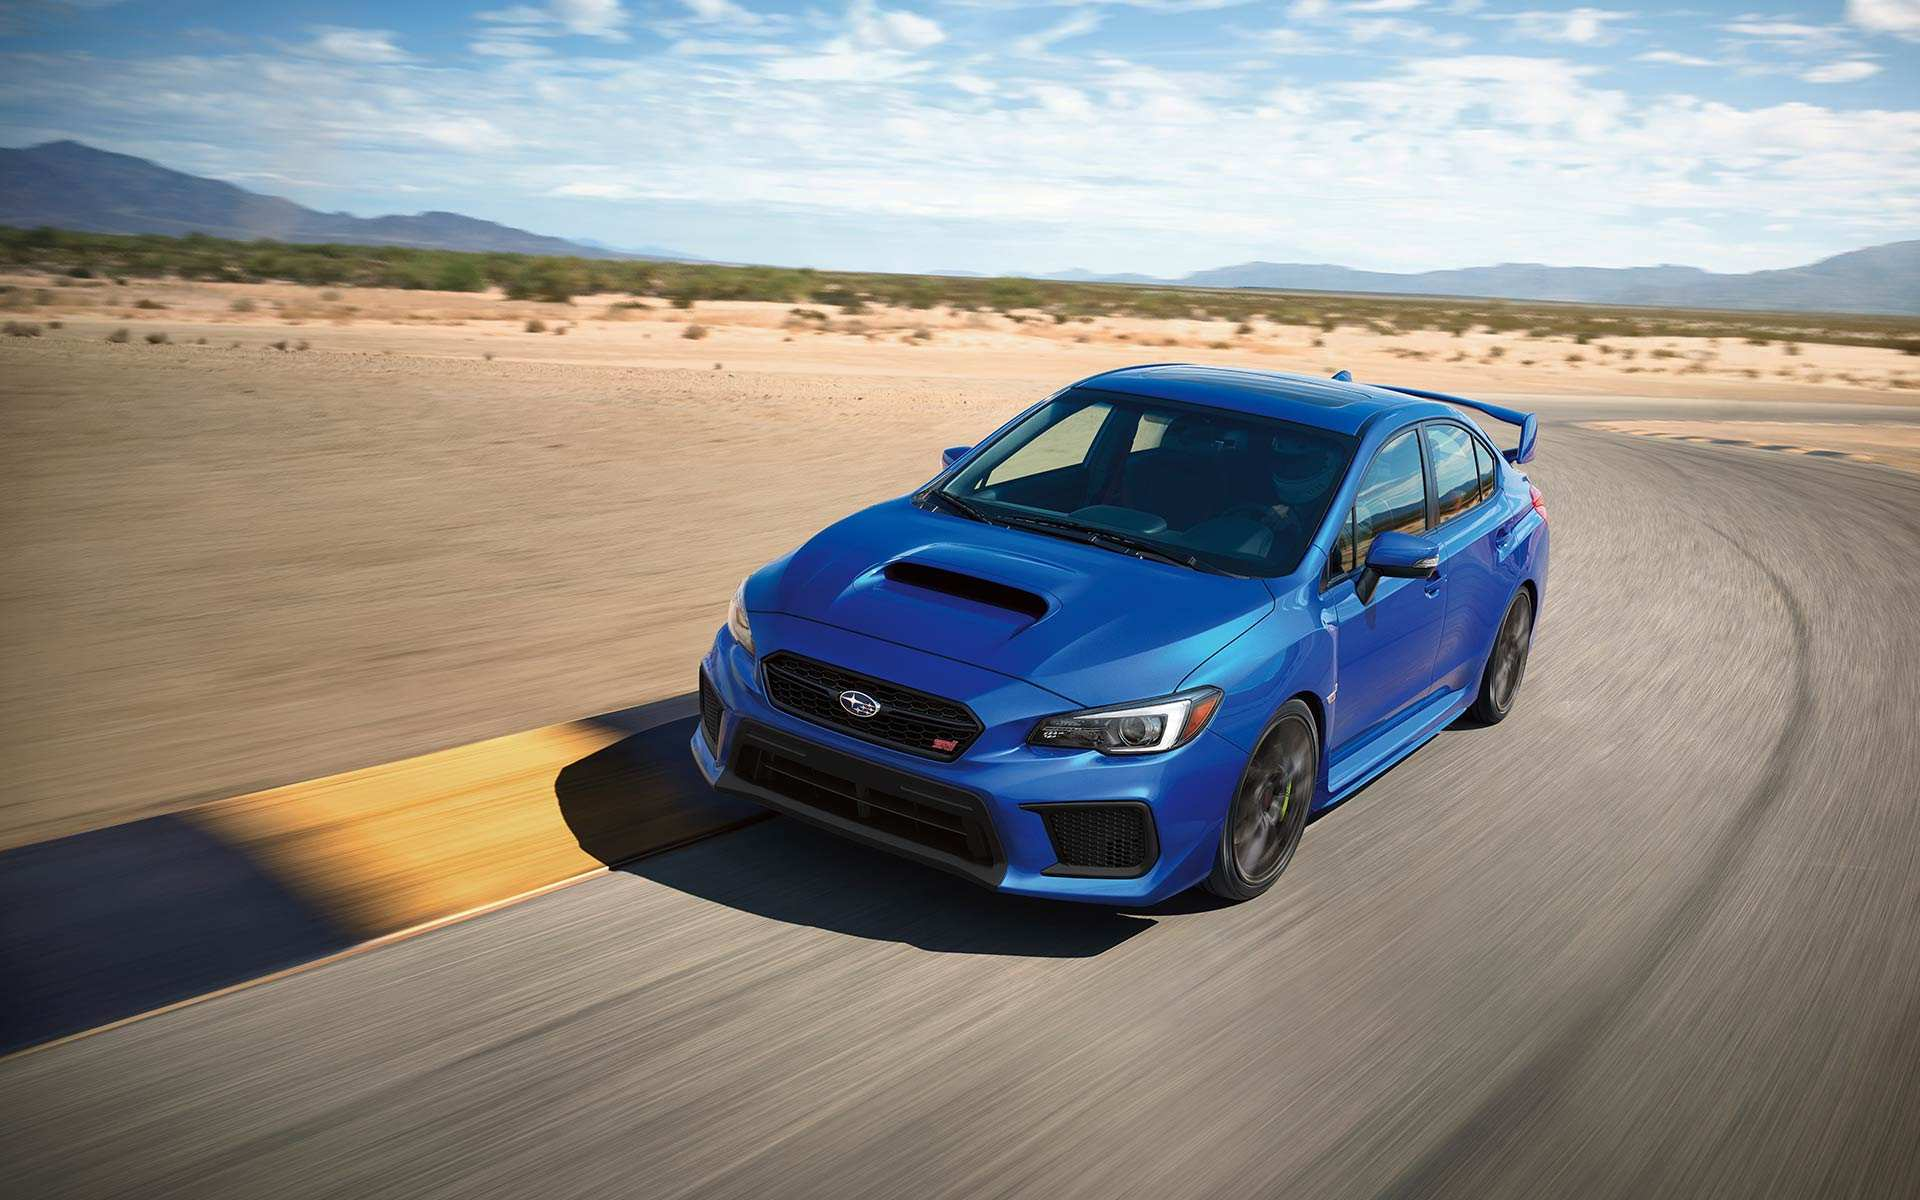 53 Best Review The Subaru Sti Wagon 2019 Specs And Review First Drive by The Subaru Sti Wagon 2019 Specs And Review